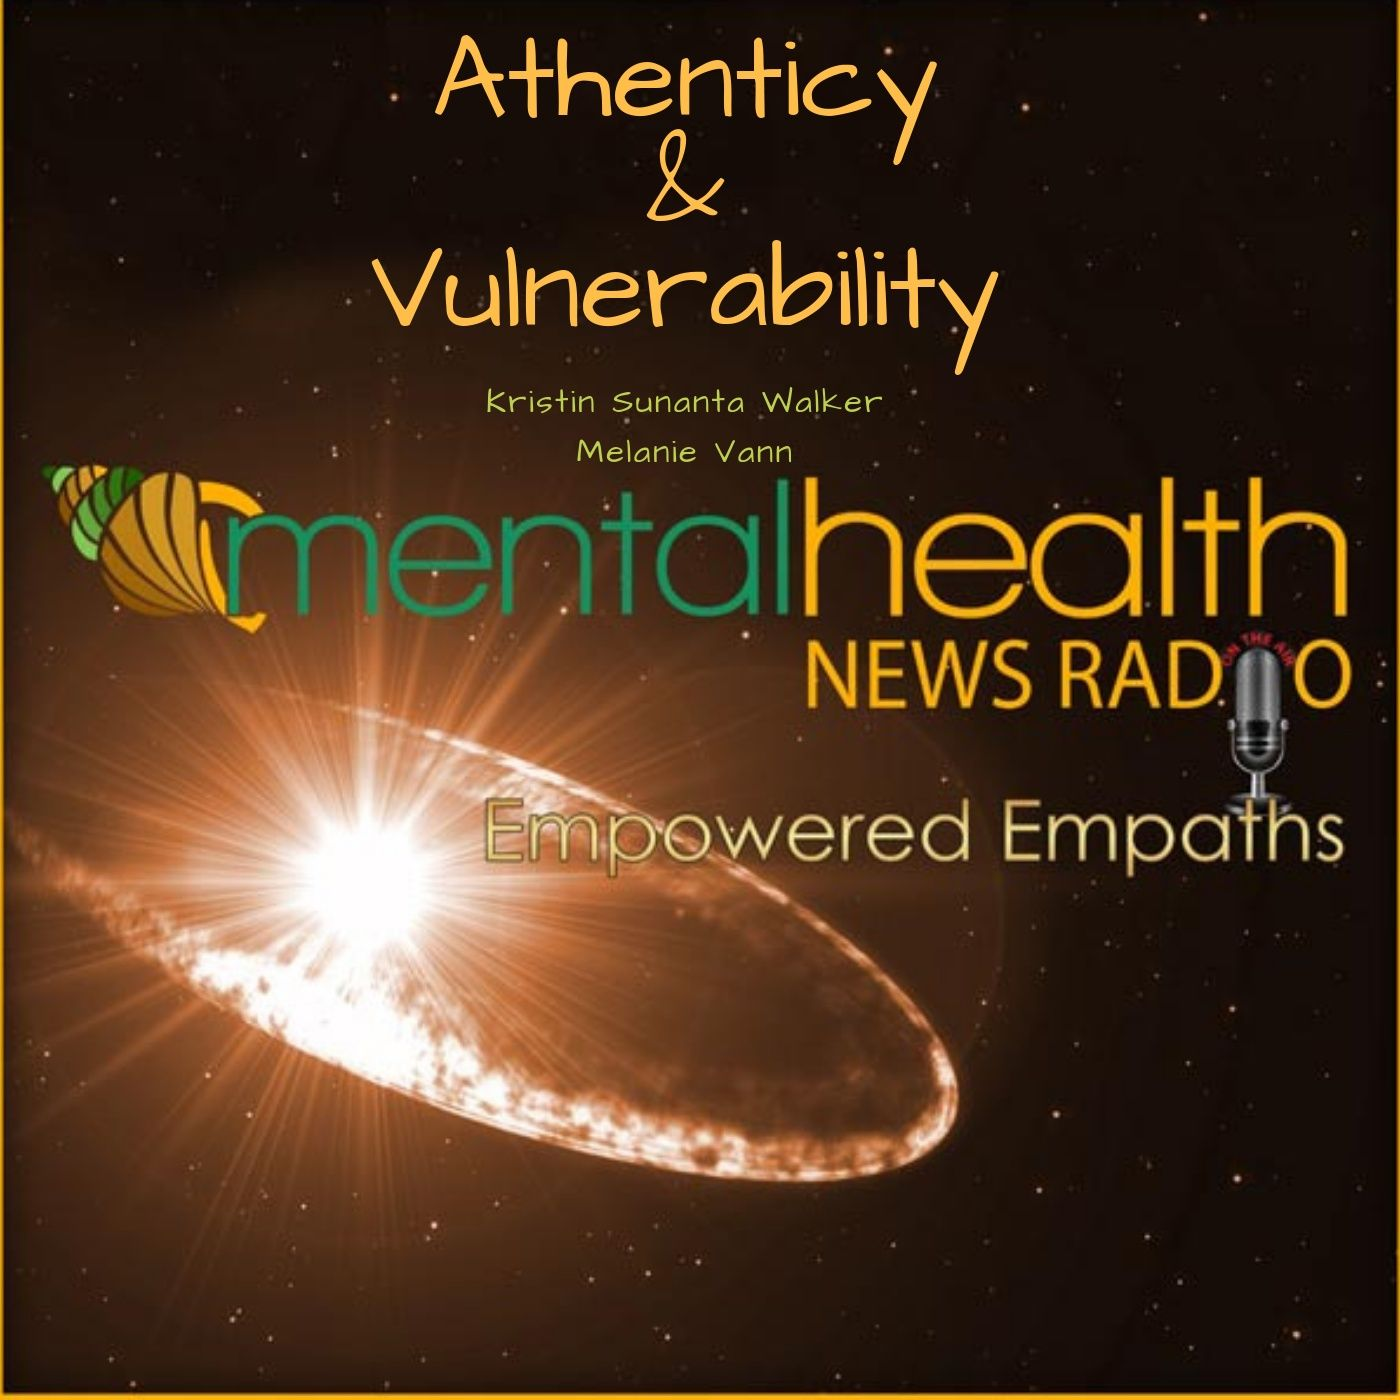 Mental Health News Radio - Empowered Empaths: Vulnerability and Authenticity